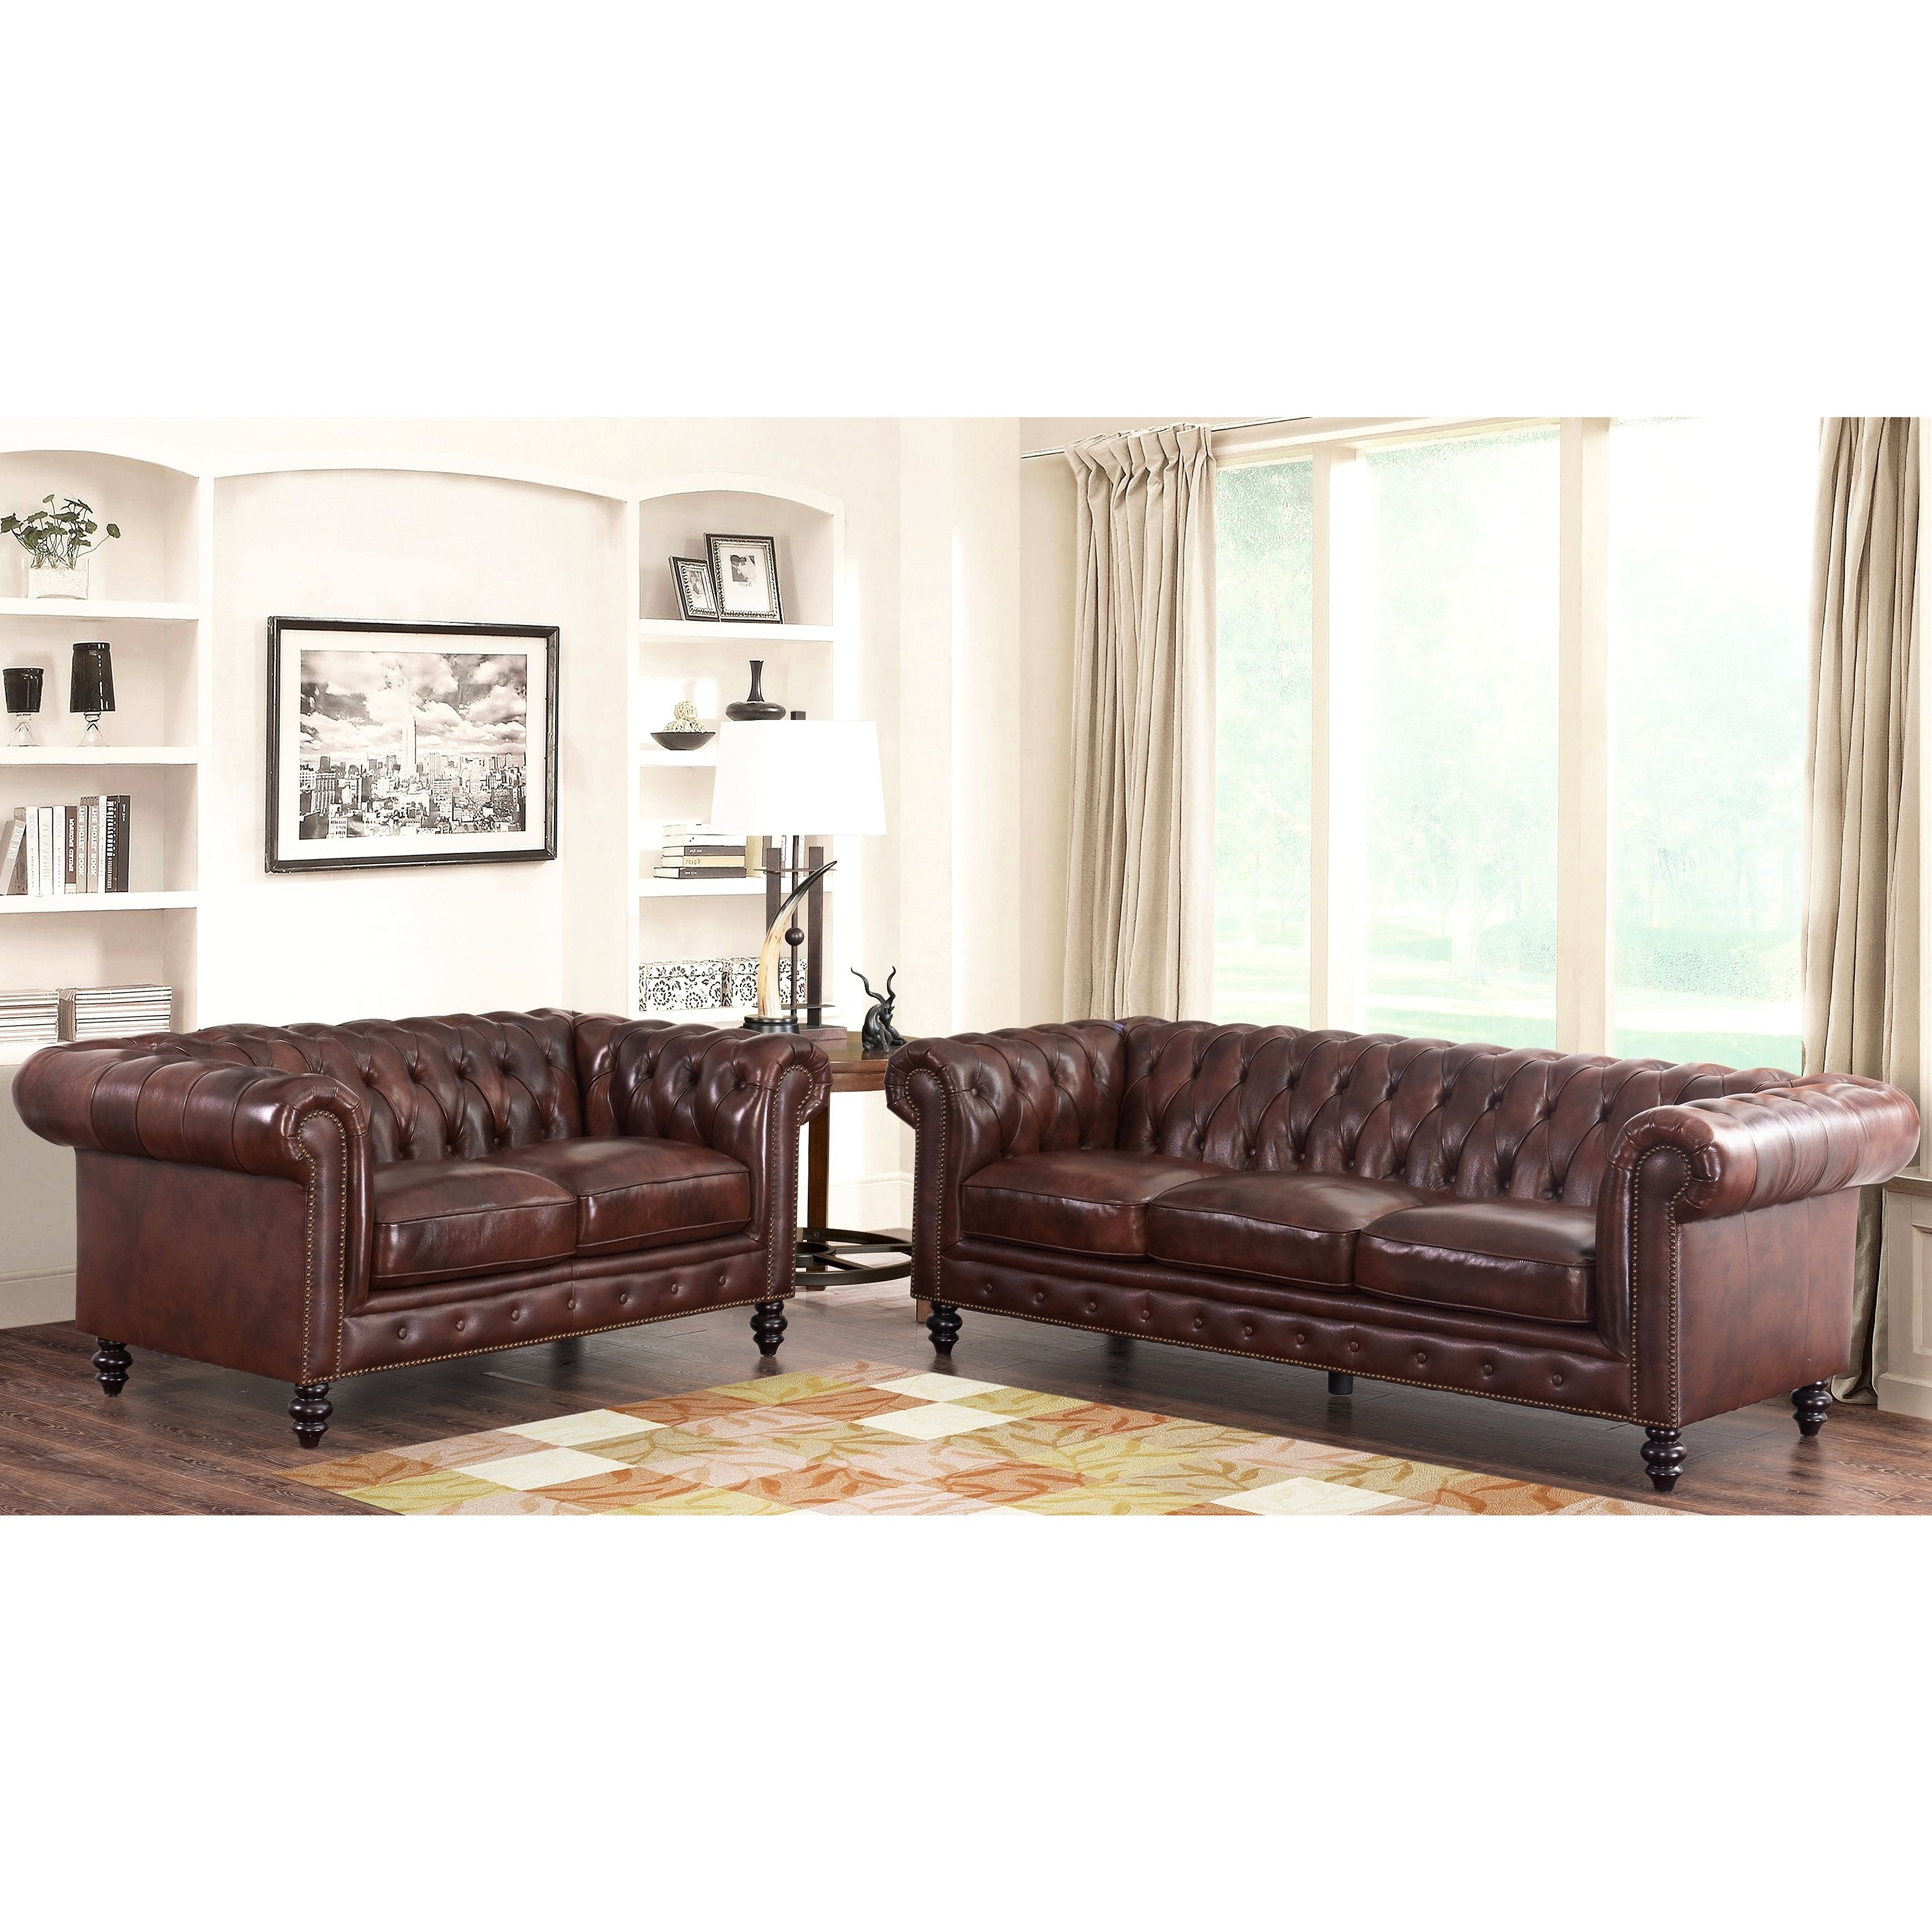 Abbyson Grand Chesterfield Brown Top Grain Leather 2 Piece Living